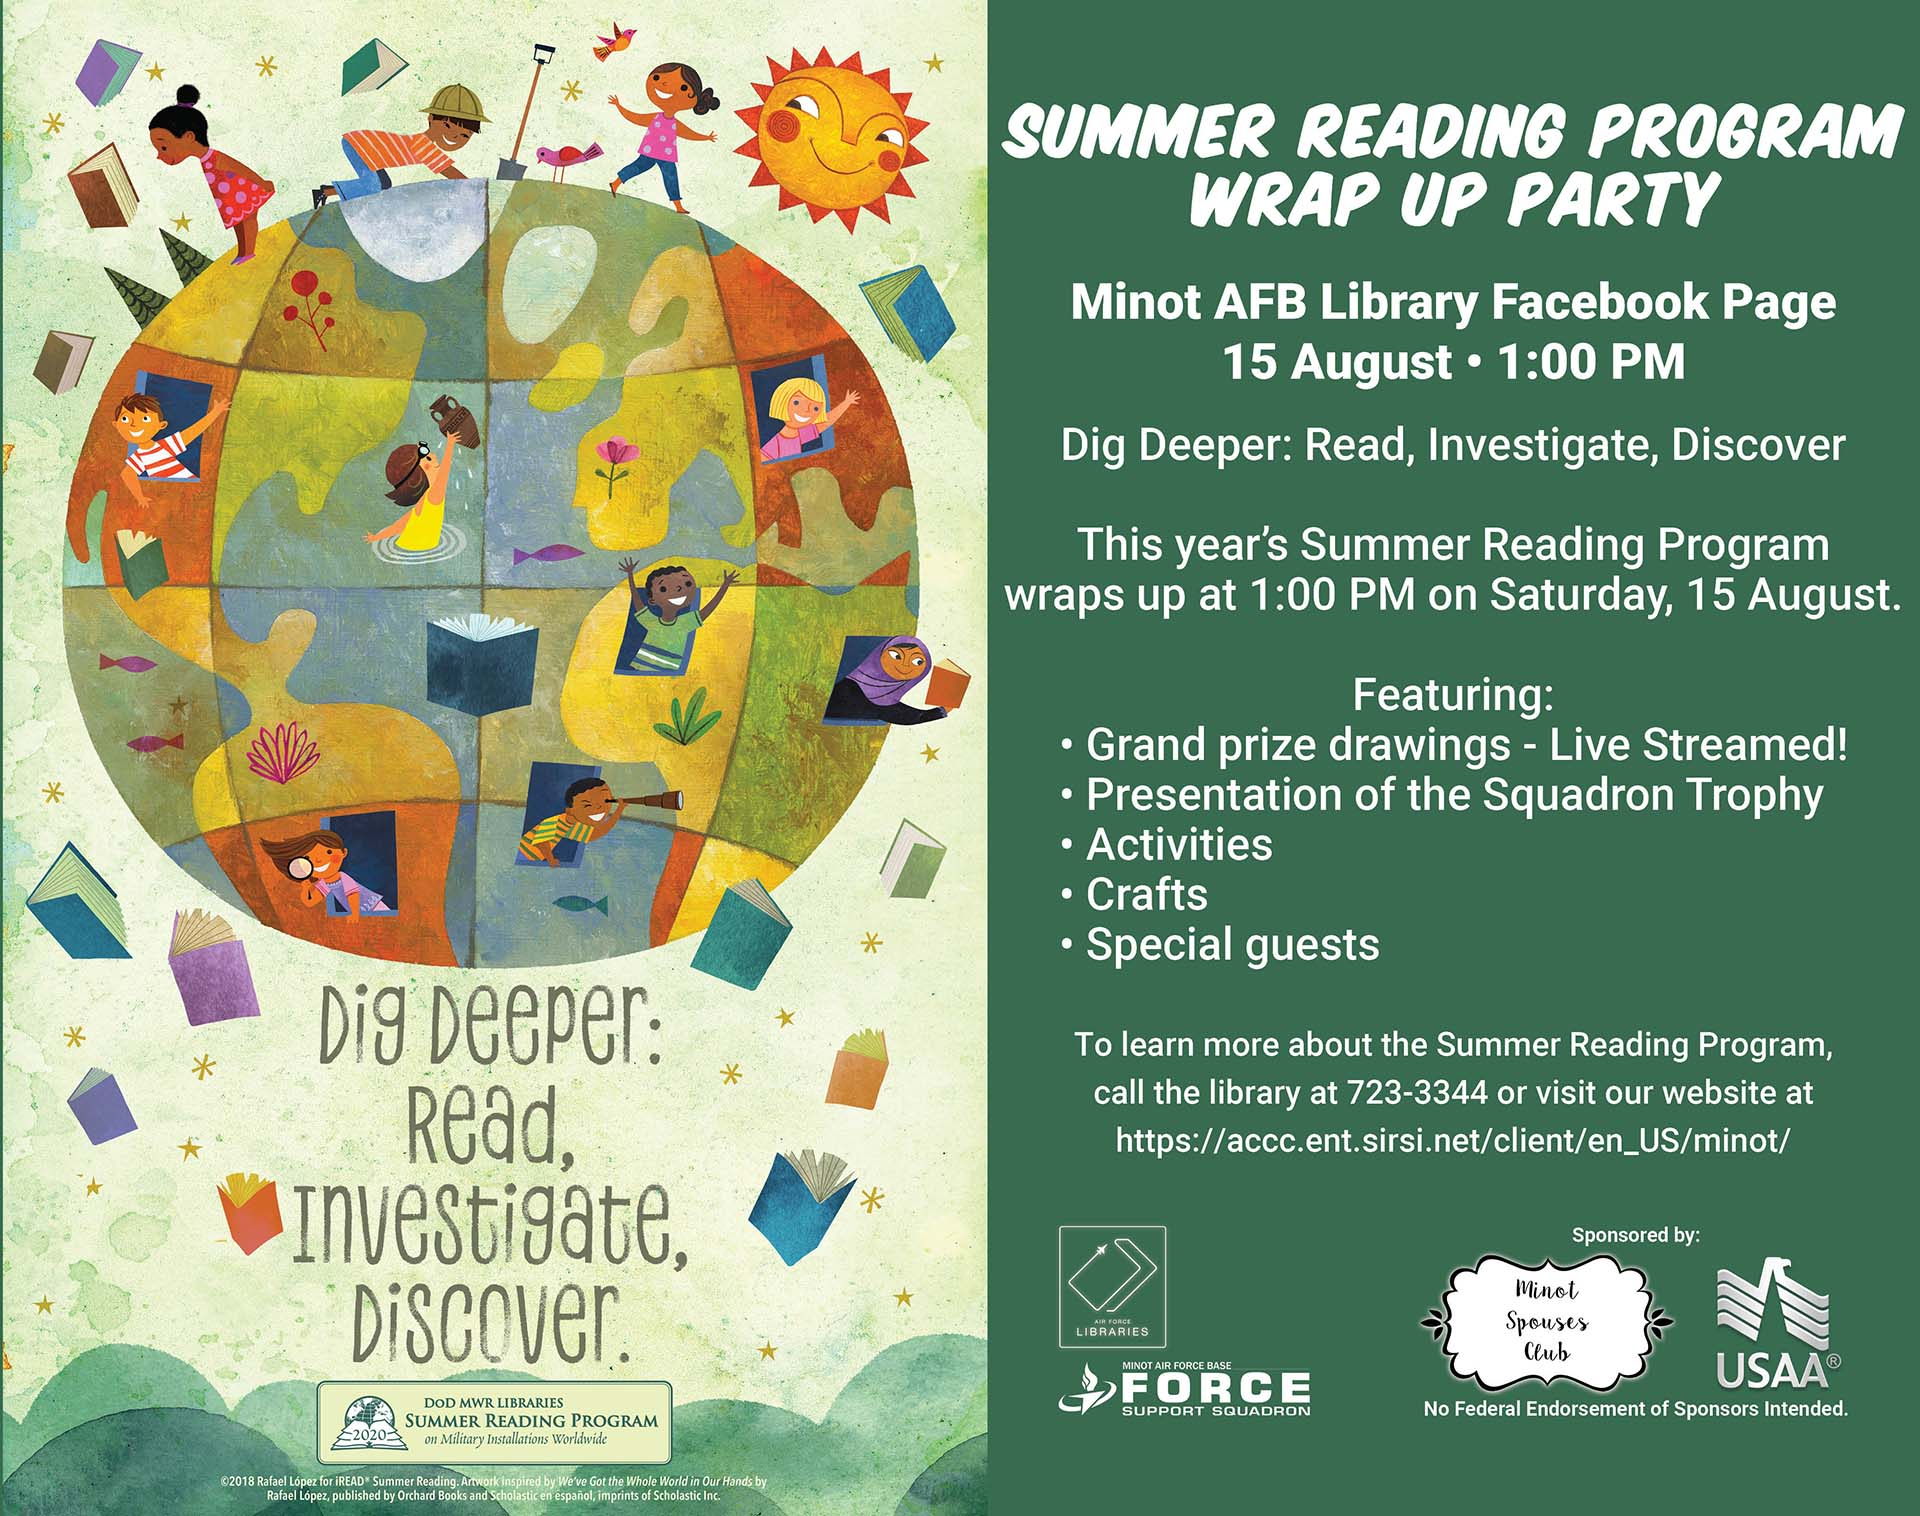 Summer Reading Program Wrap Up Party - ONLINE